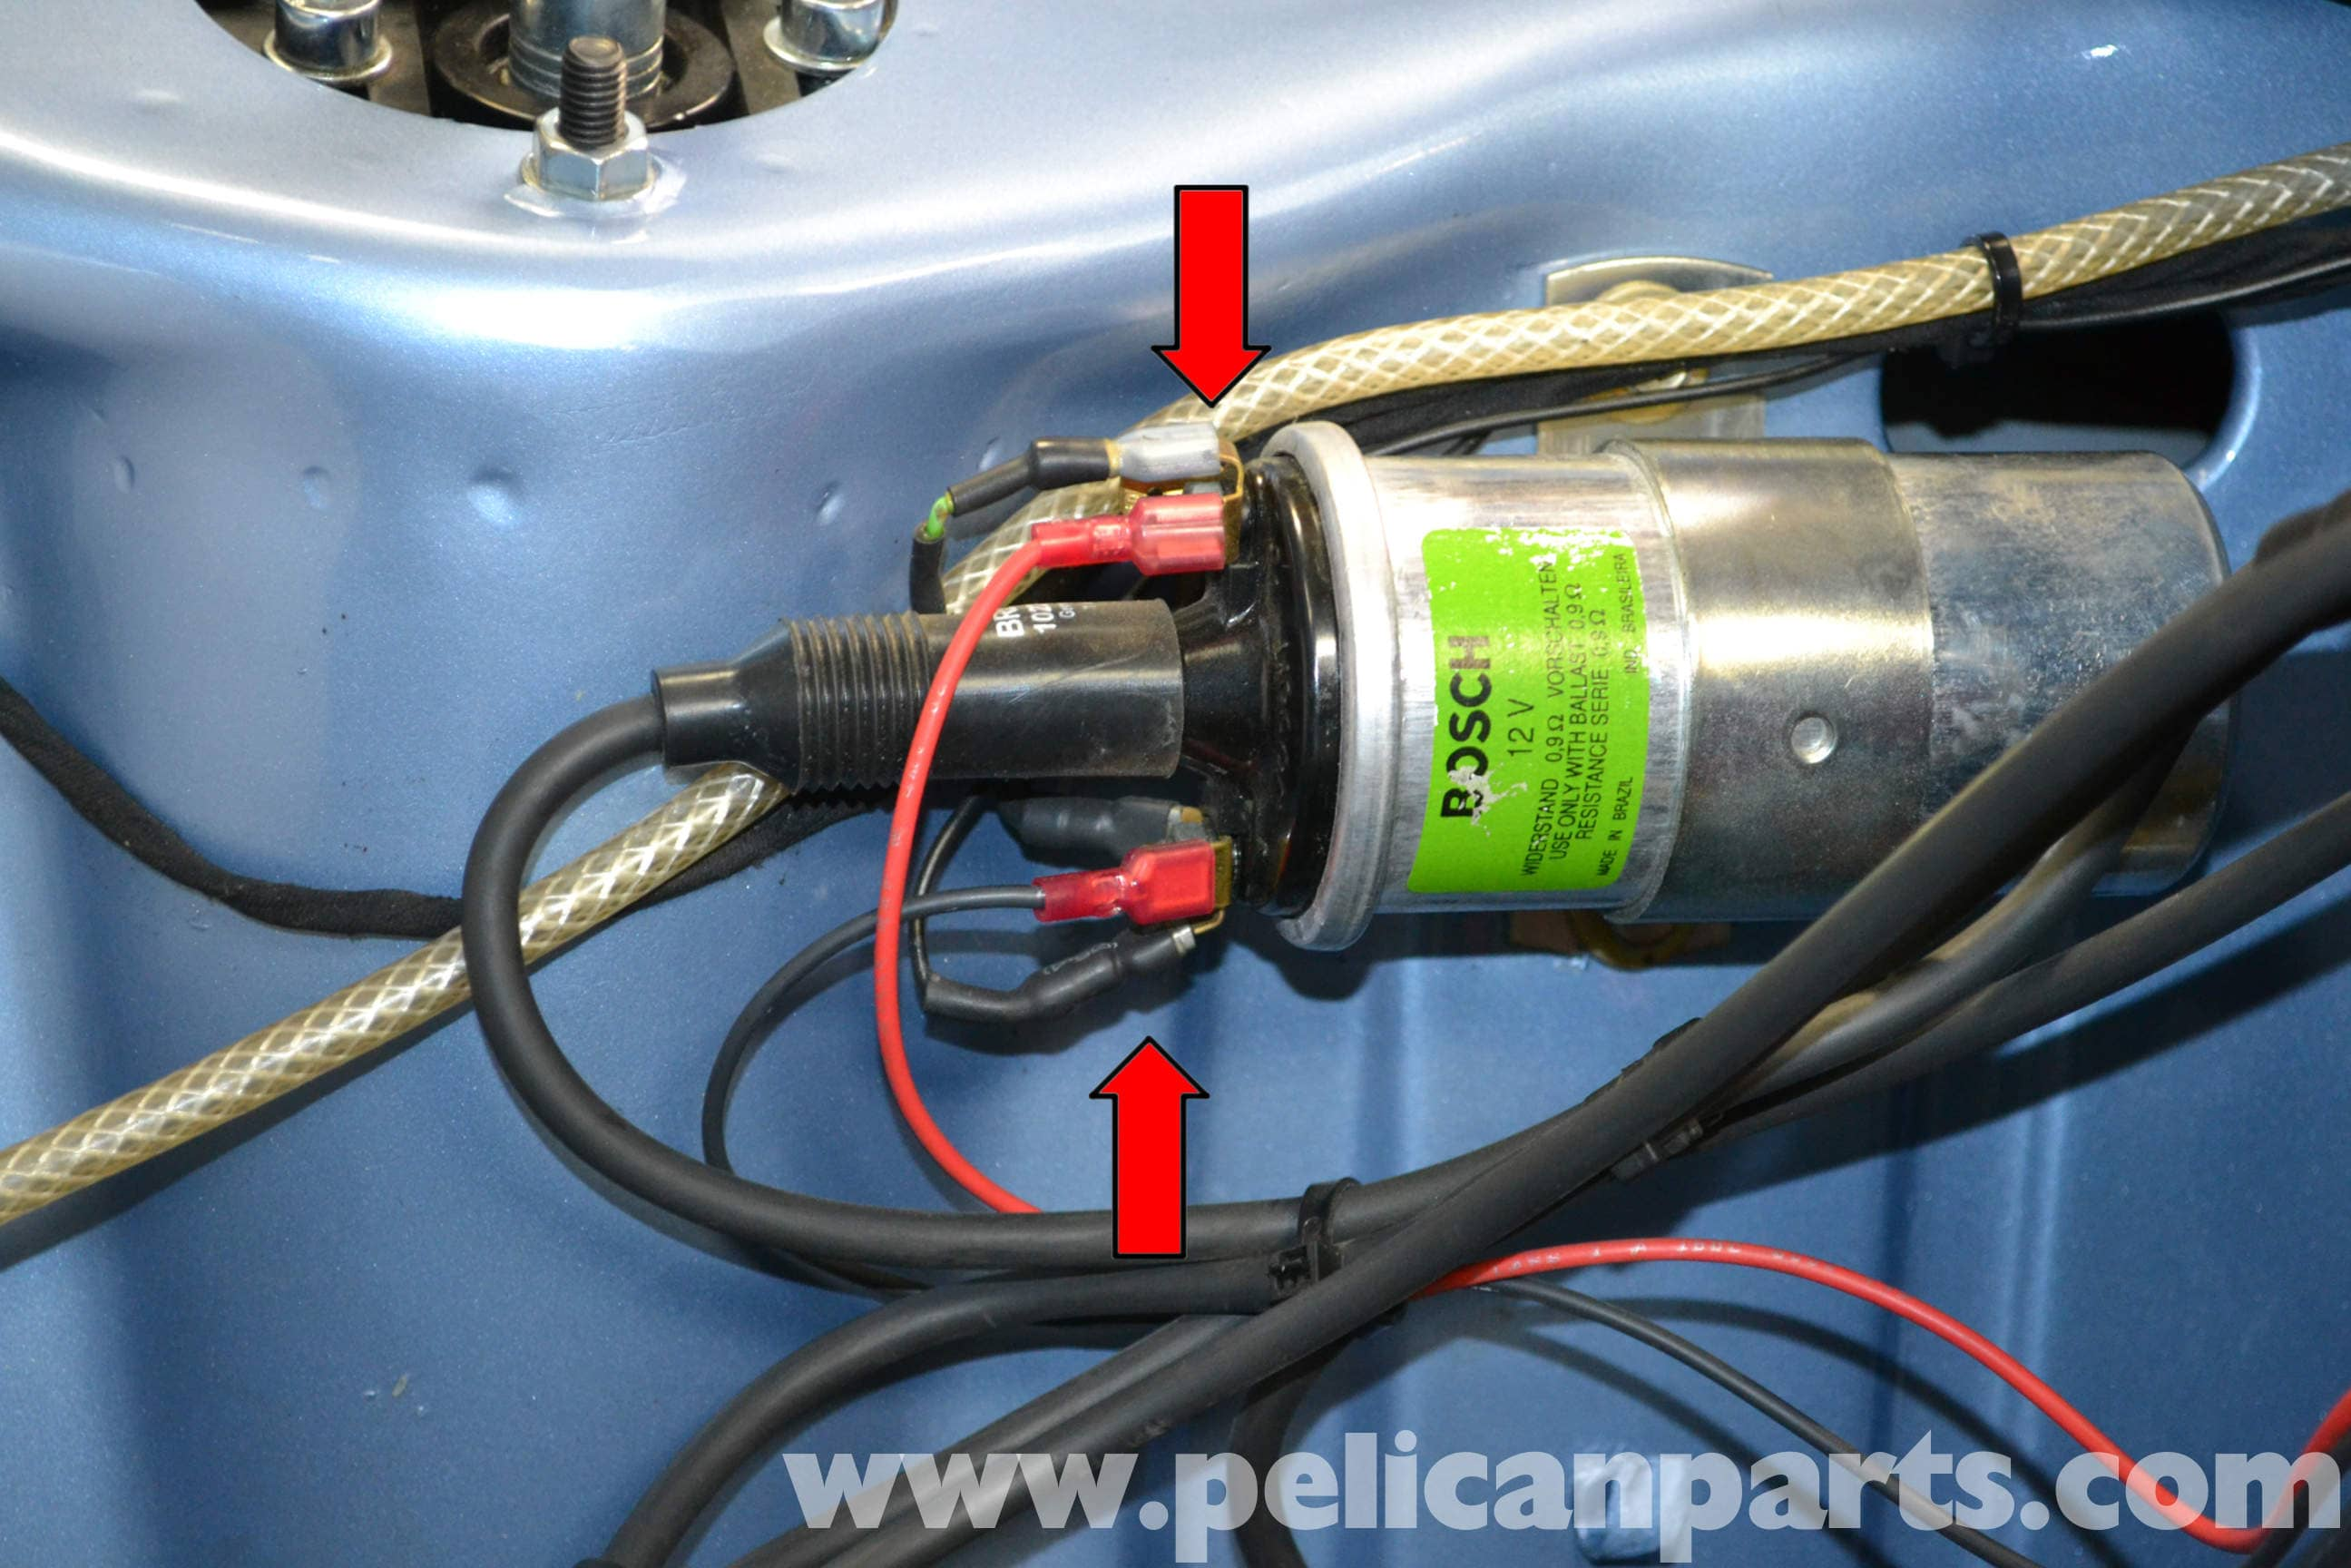 BMW 2002 Coil Testing and Replacement (1966-1976) | Pelican Parts ...